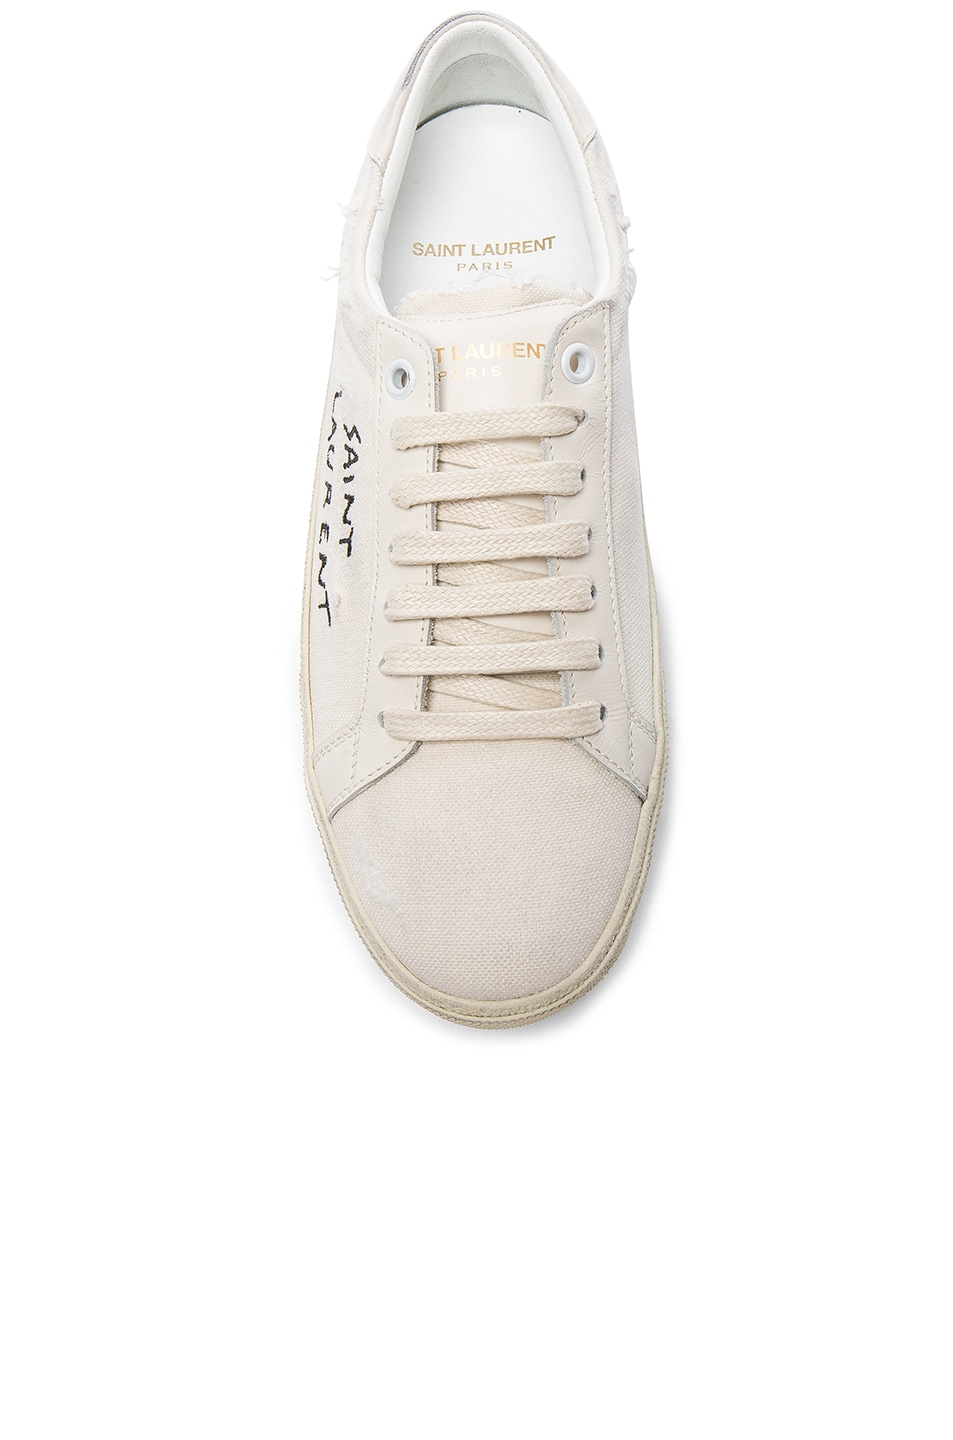 Image 4 of Saint Laurent Leather Court Classic Logo Sneakers in Optic White & Black